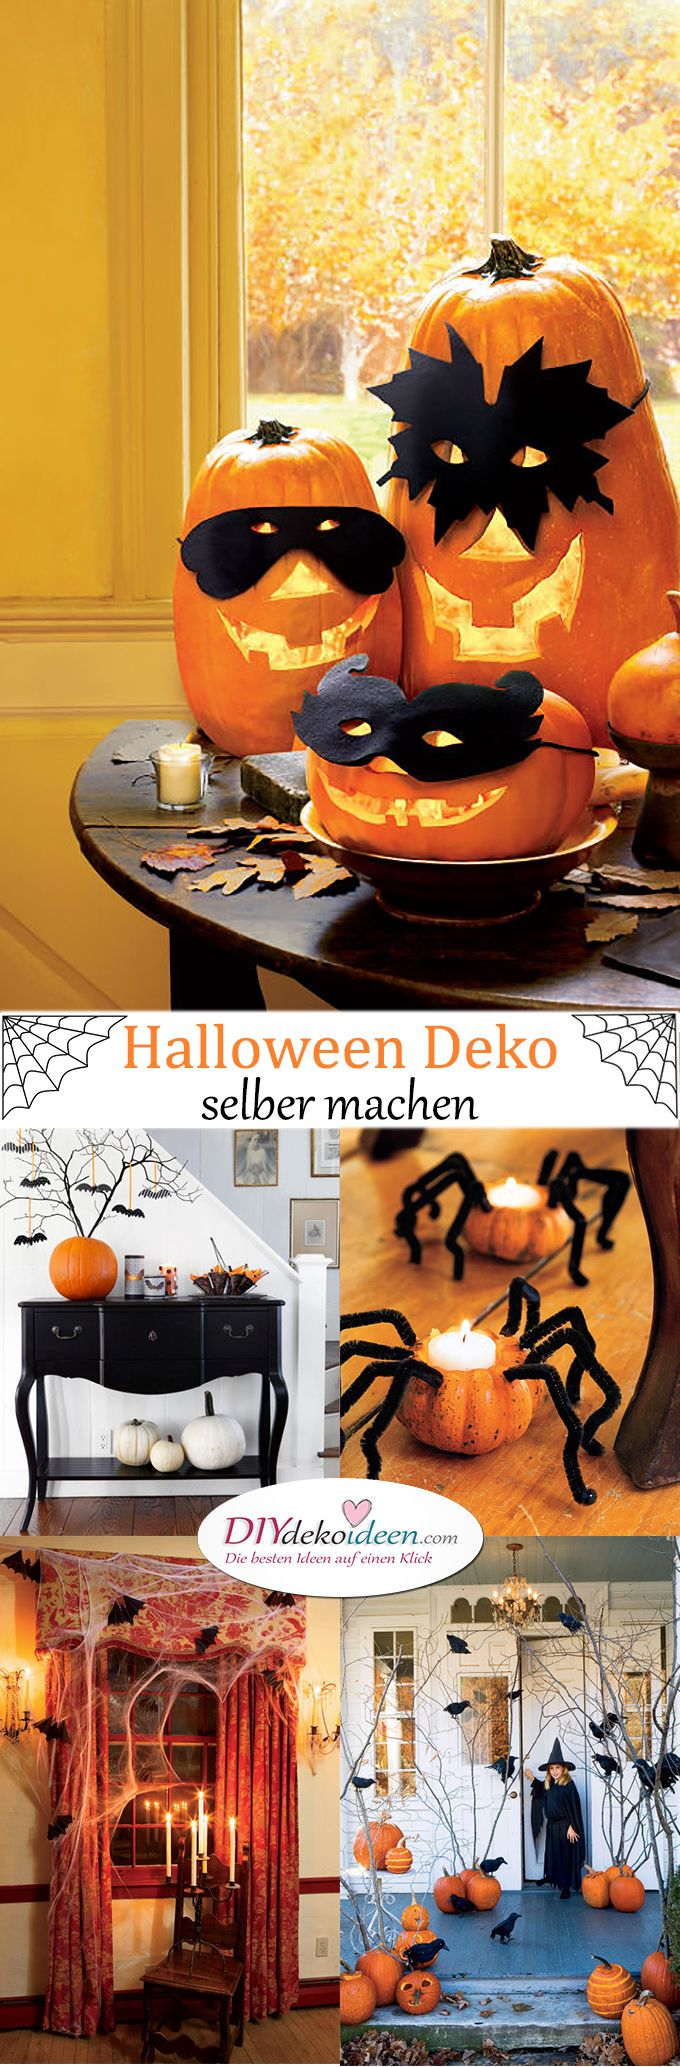 die besten 25 halloween deko selber machen ideen auf pinterest halloween party deko selber. Black Bedroom Furniture Sets. Home Design Ideas